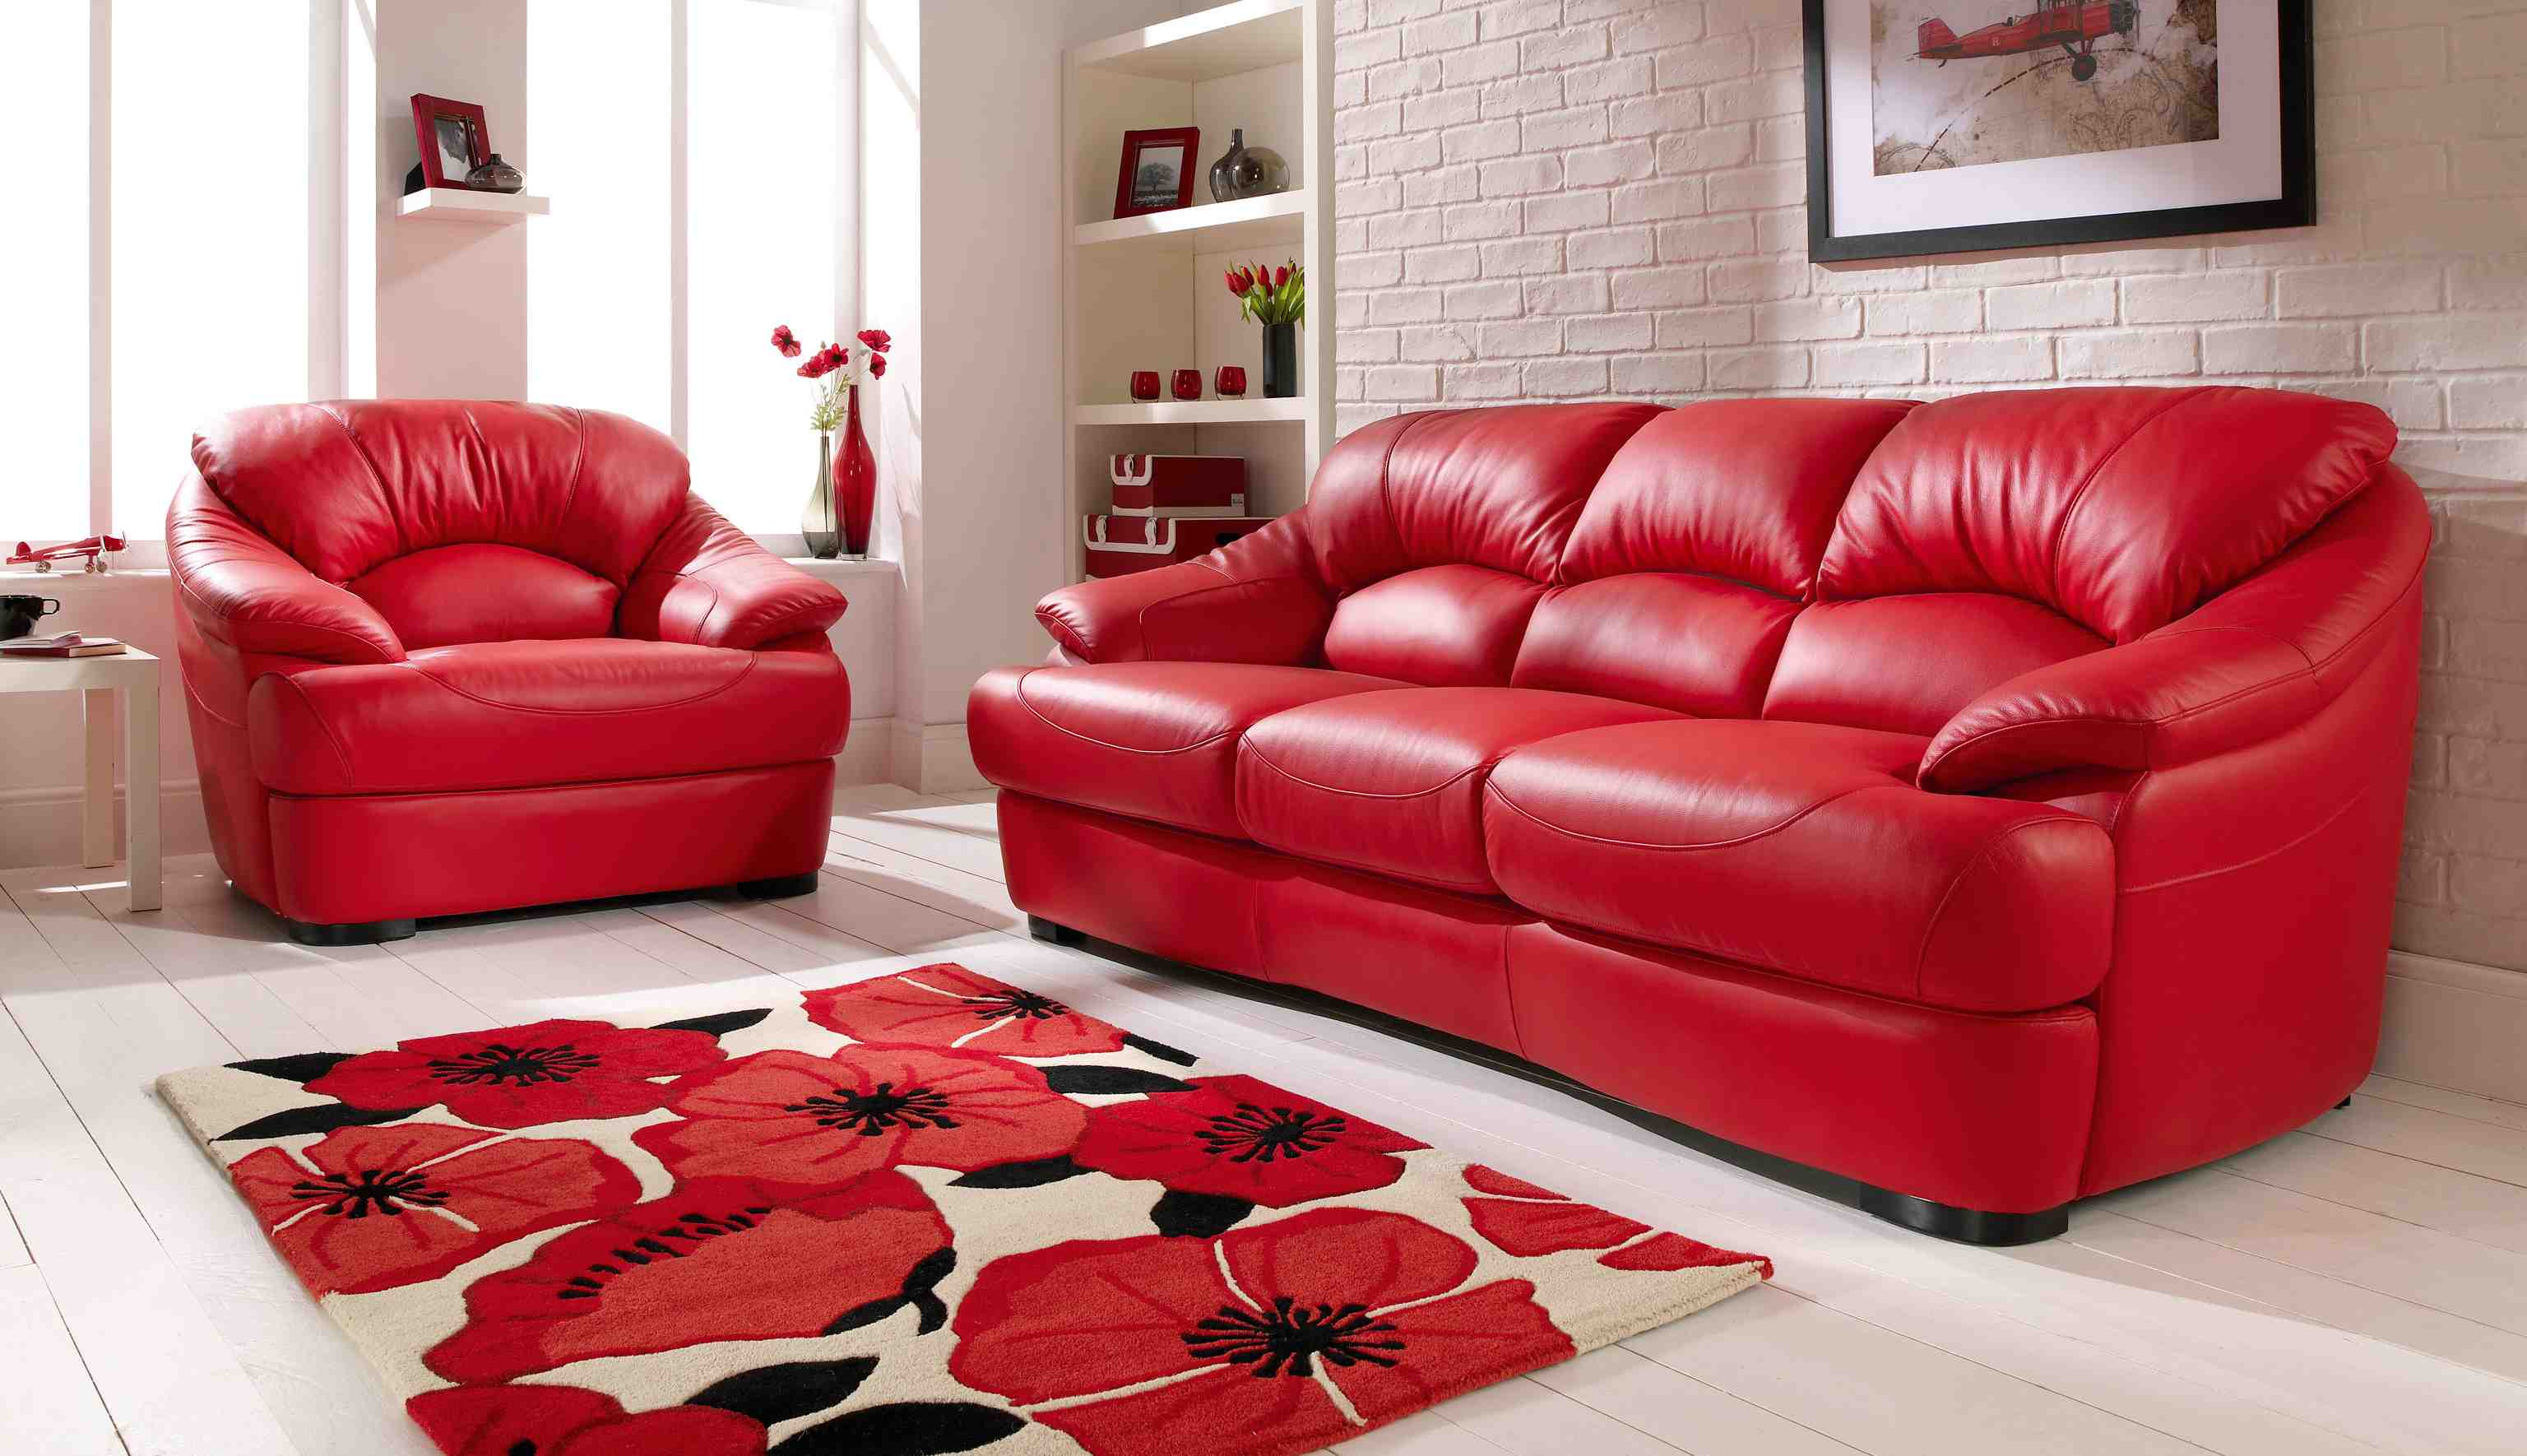 Adorable Red Leather Sofa Collection